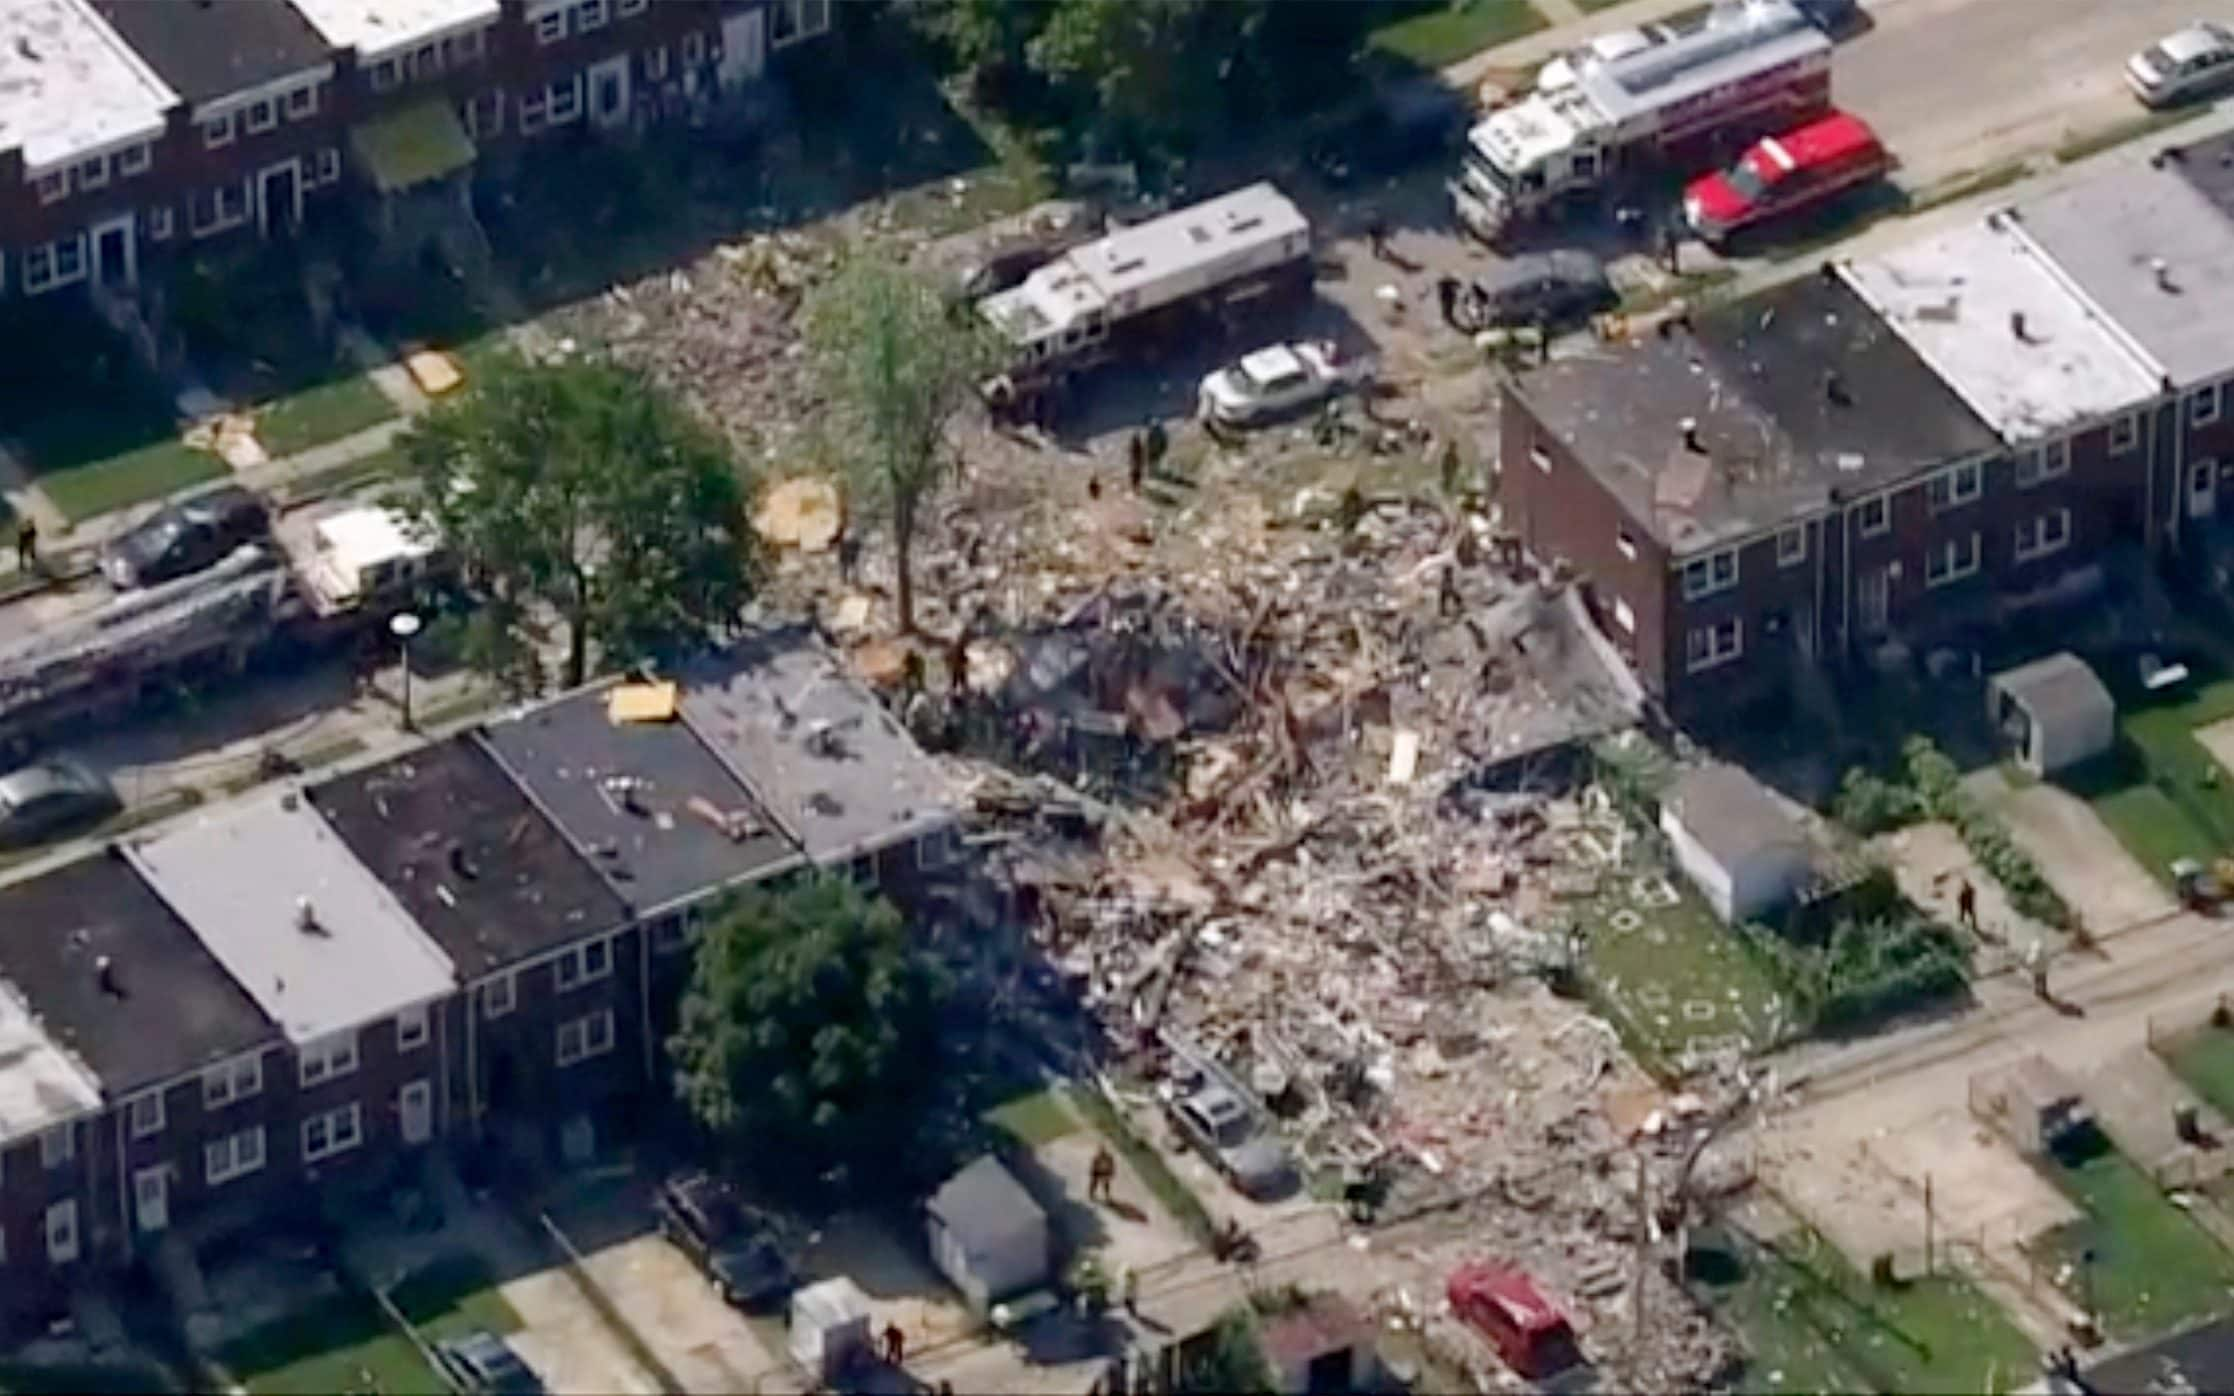 At least five people trapped after major explosion rips through Baltimore neighborhood